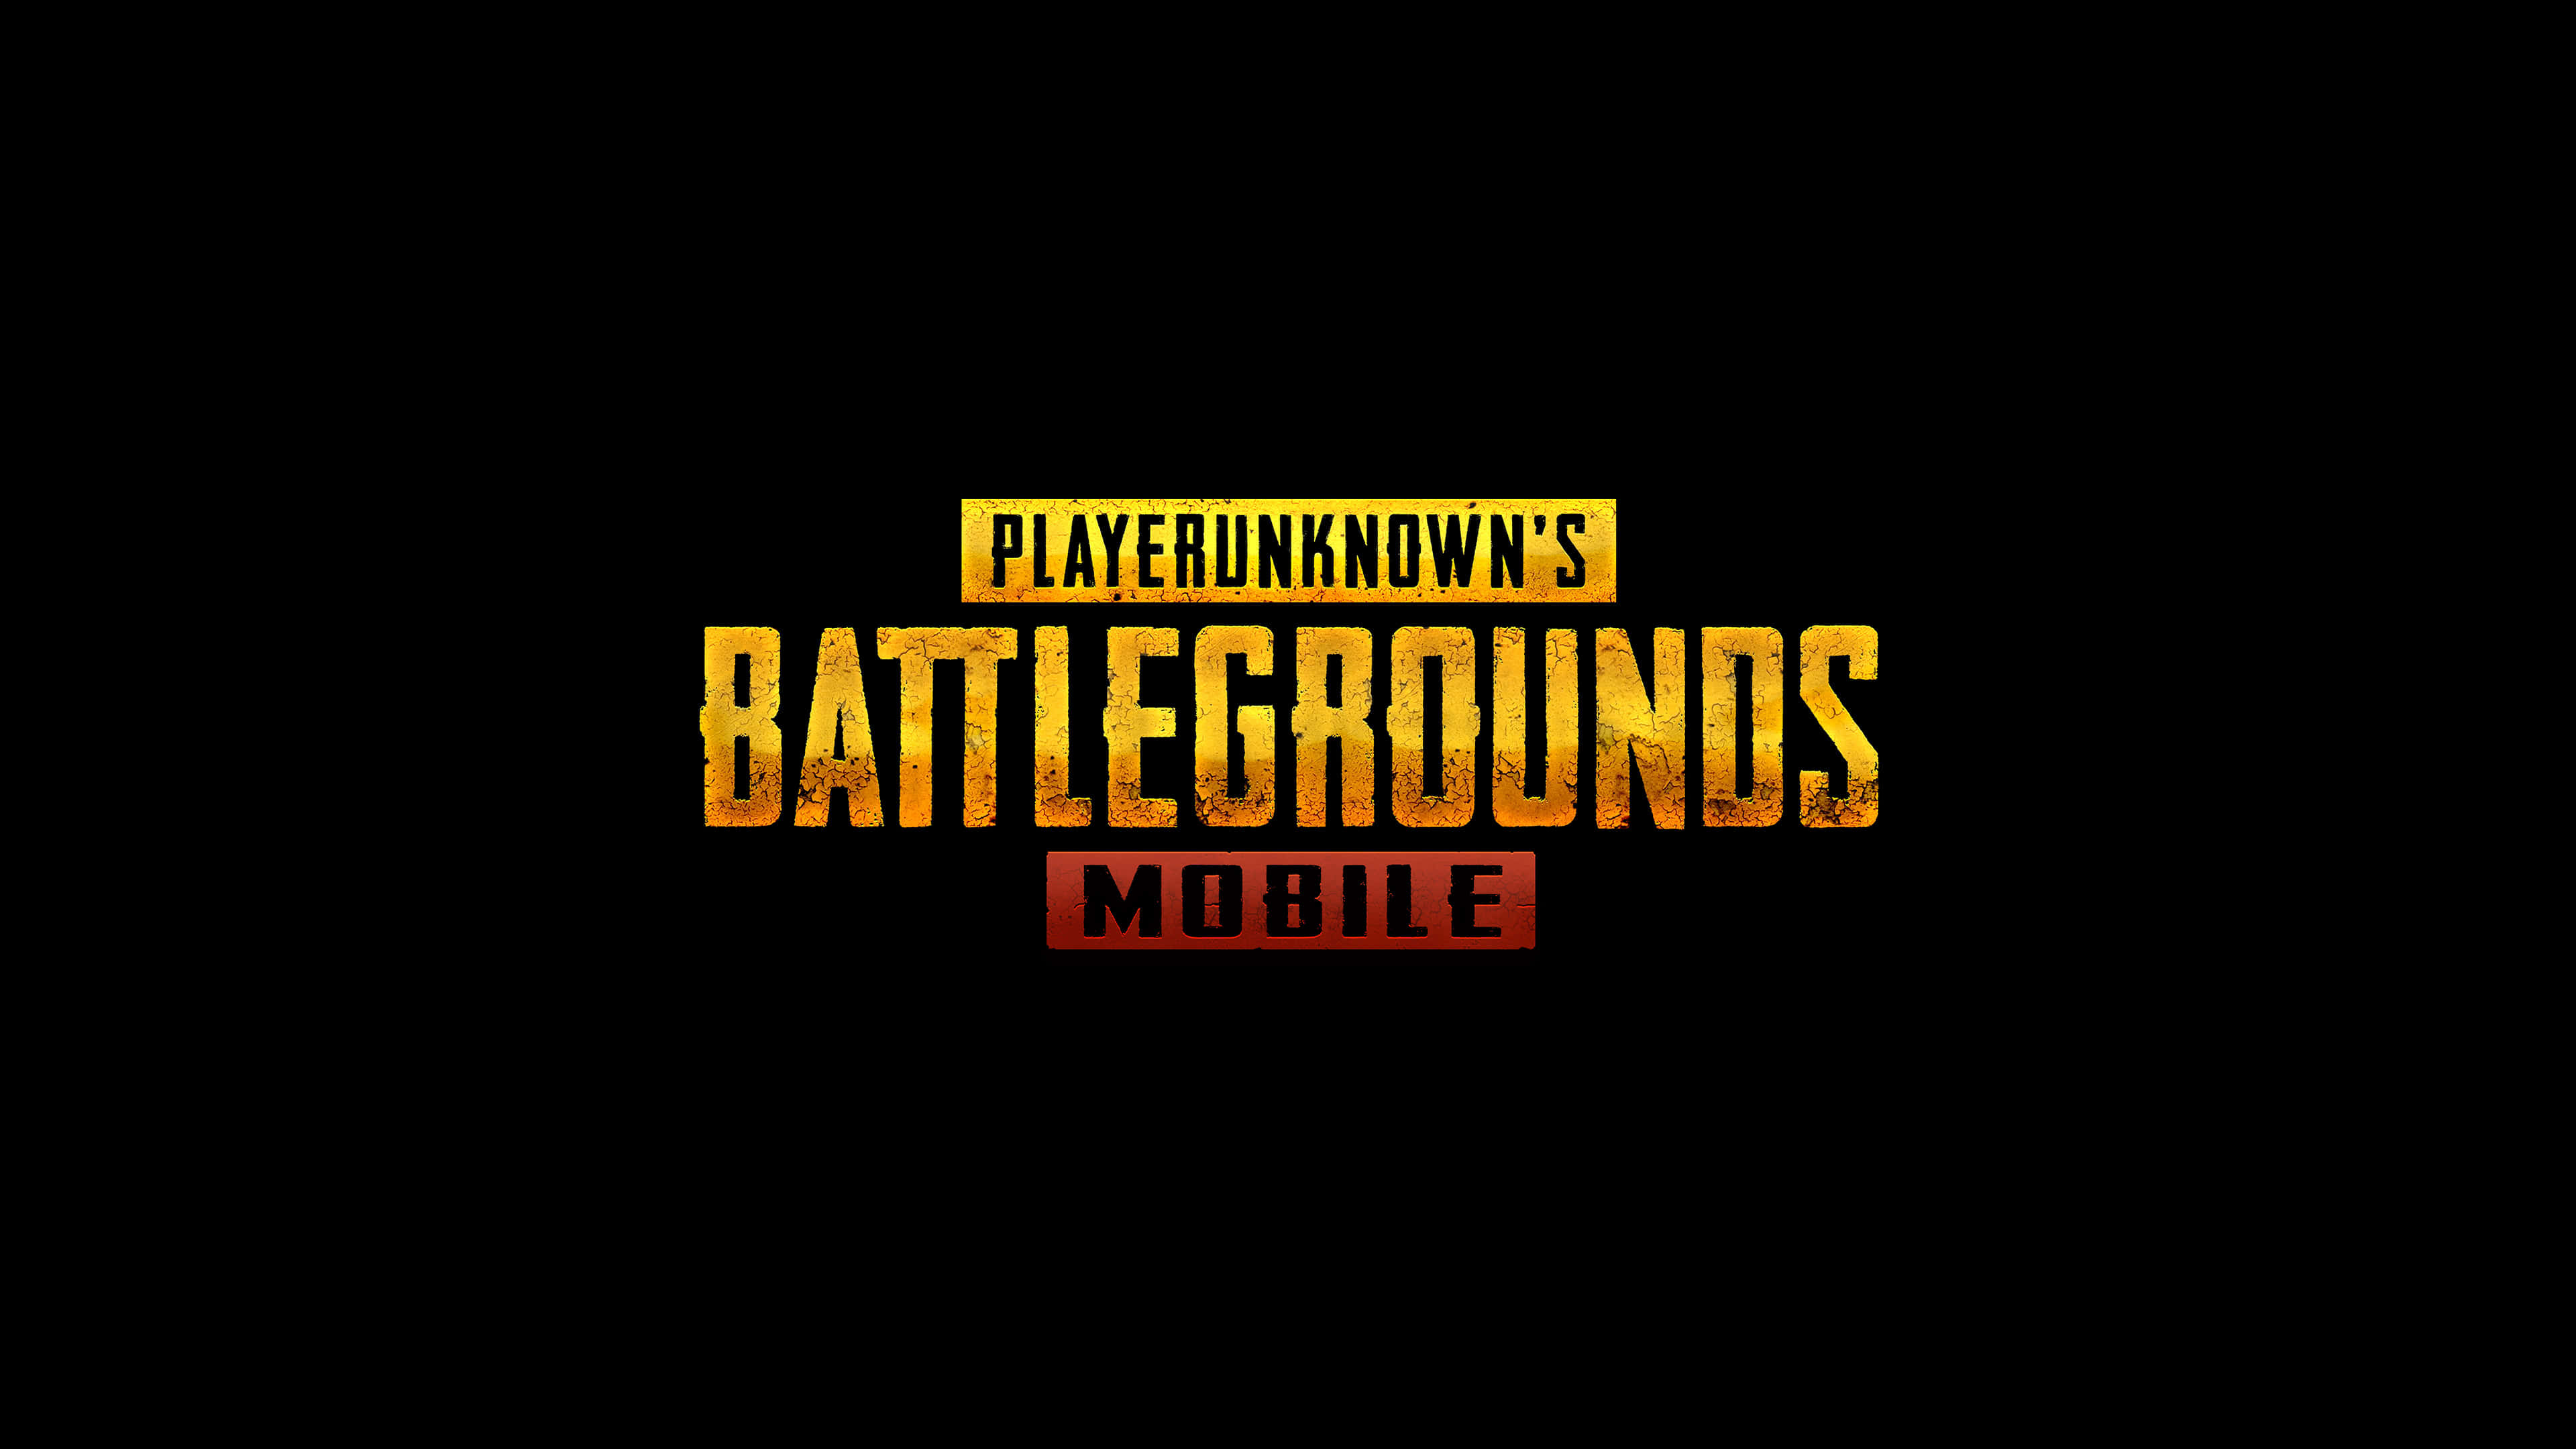 Pubg Wallpaper 4k Mobile: PUBG Mobile Player Unknown Battlegrounds Mobile Logo UHD